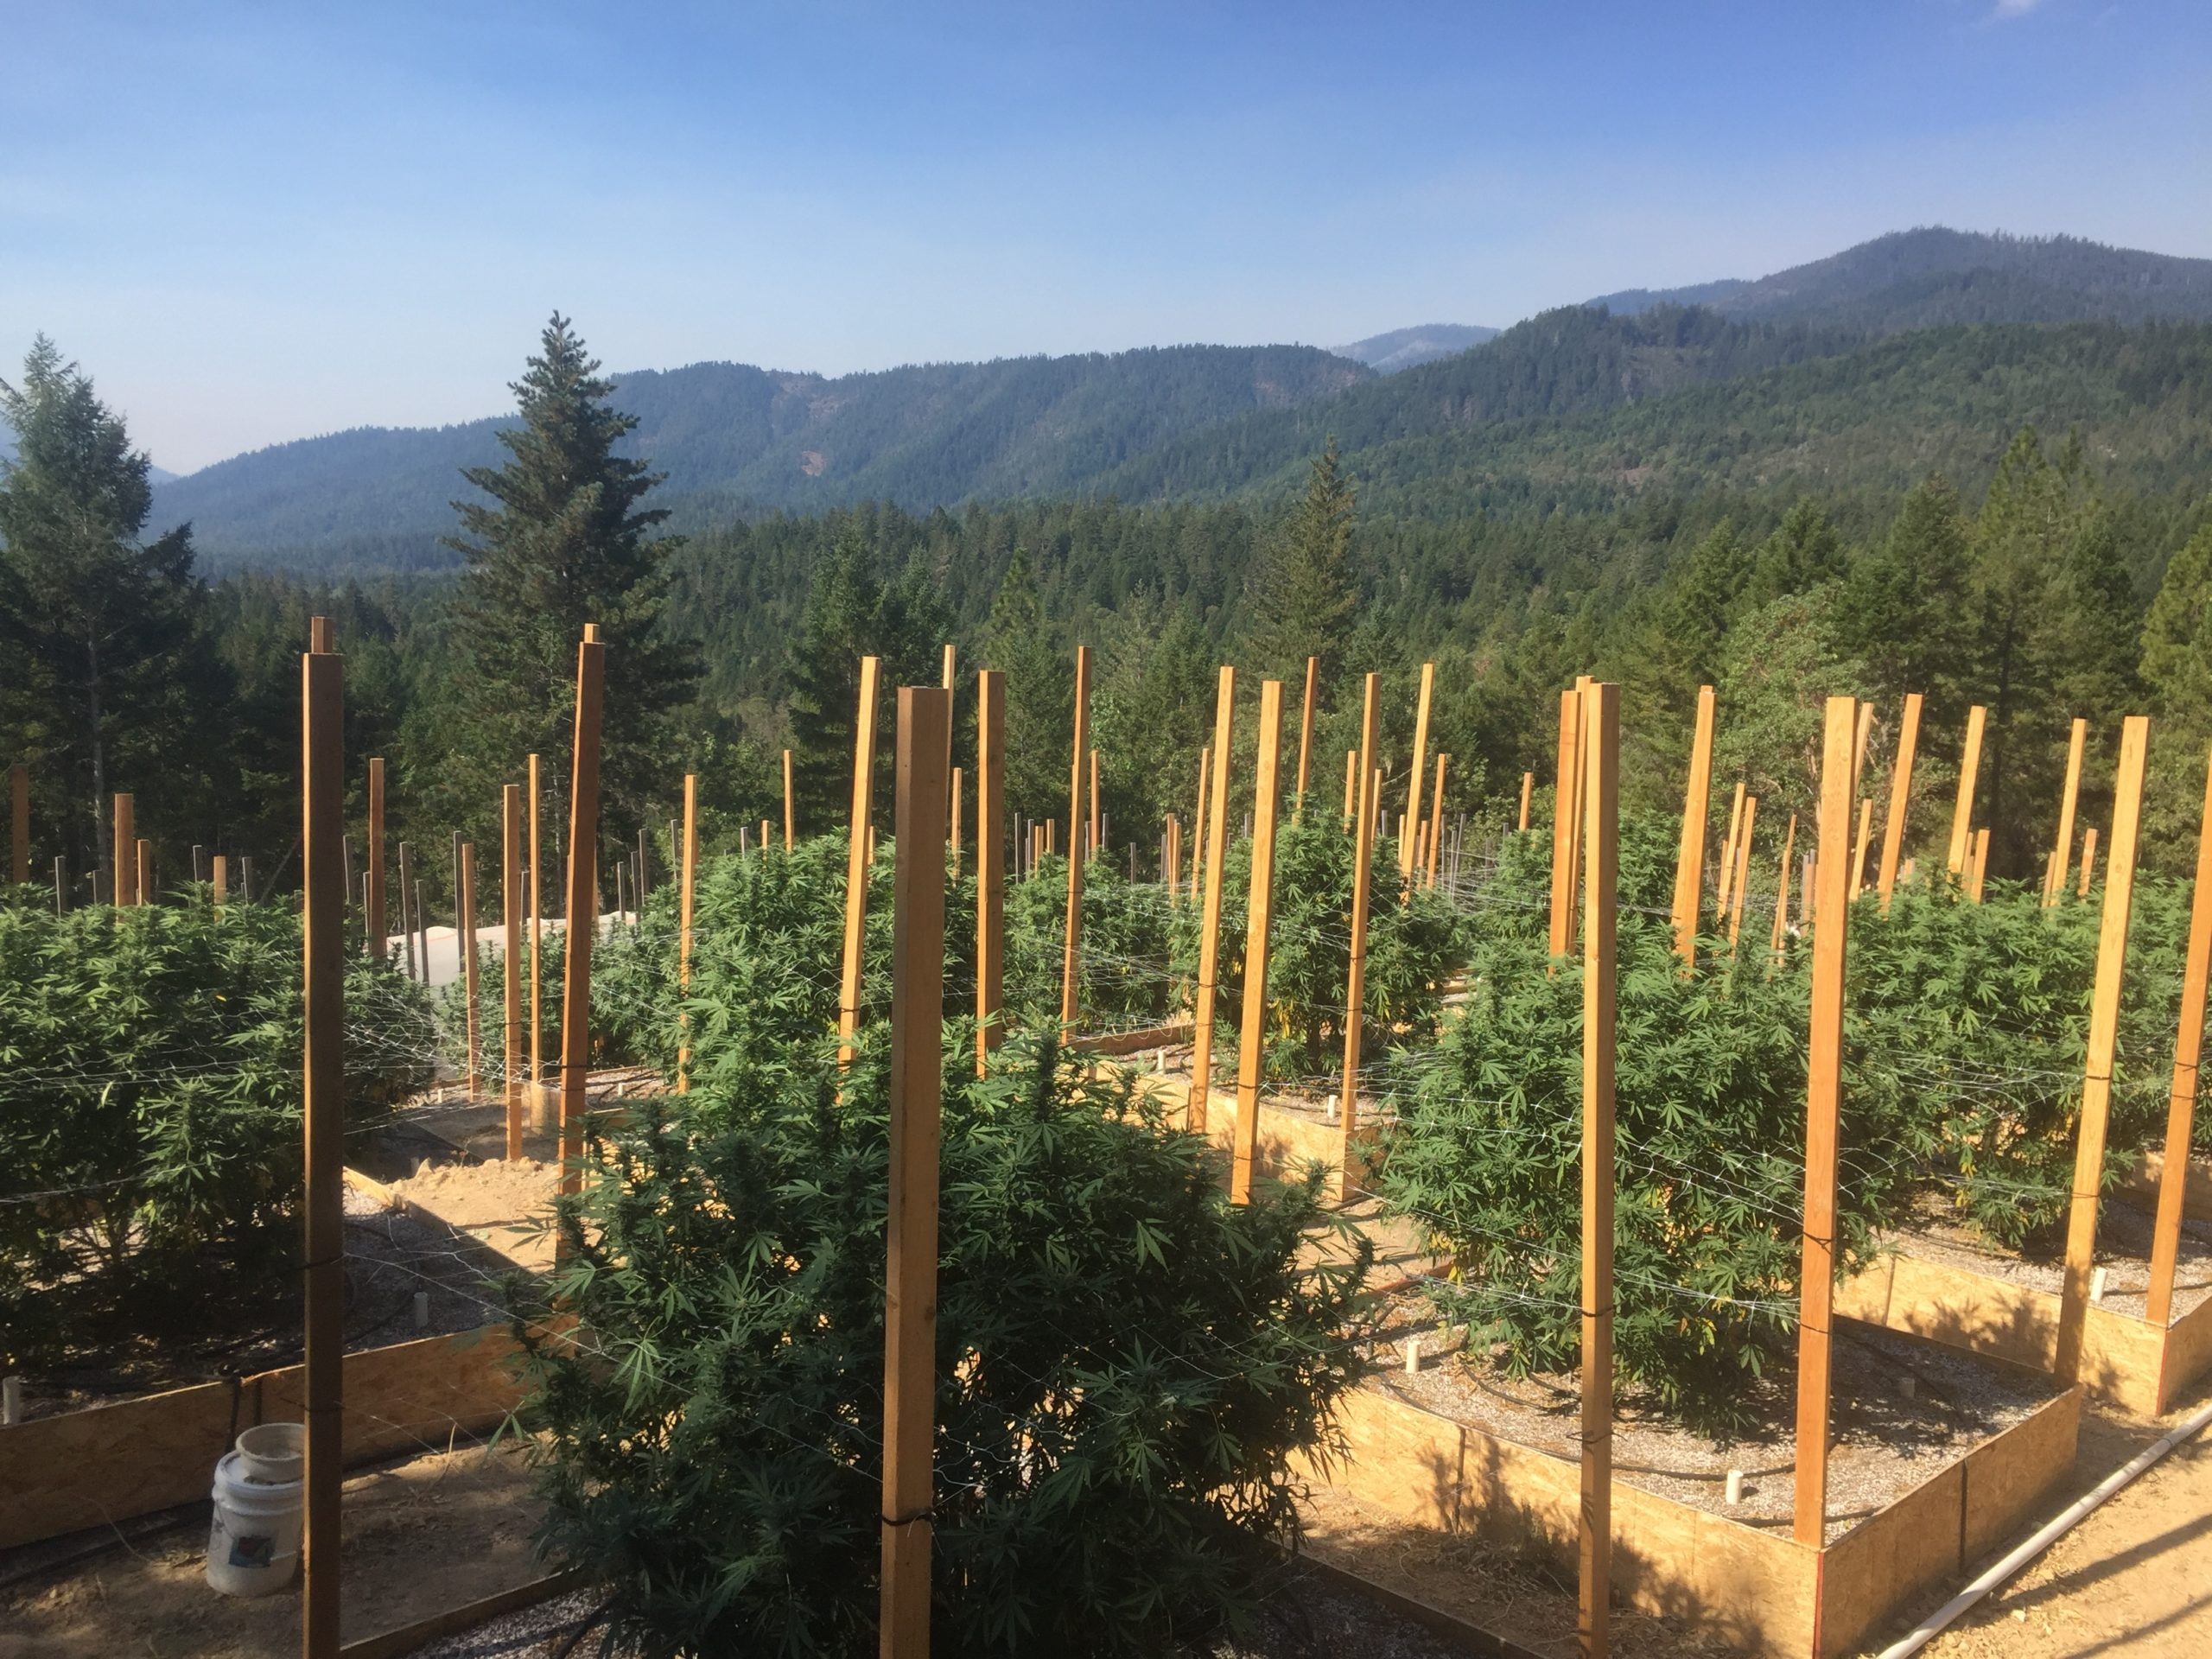 Researchers are trying to better understand how expanded cannabis acreage is affecting water resources. Photo by Hekia Bodwitch